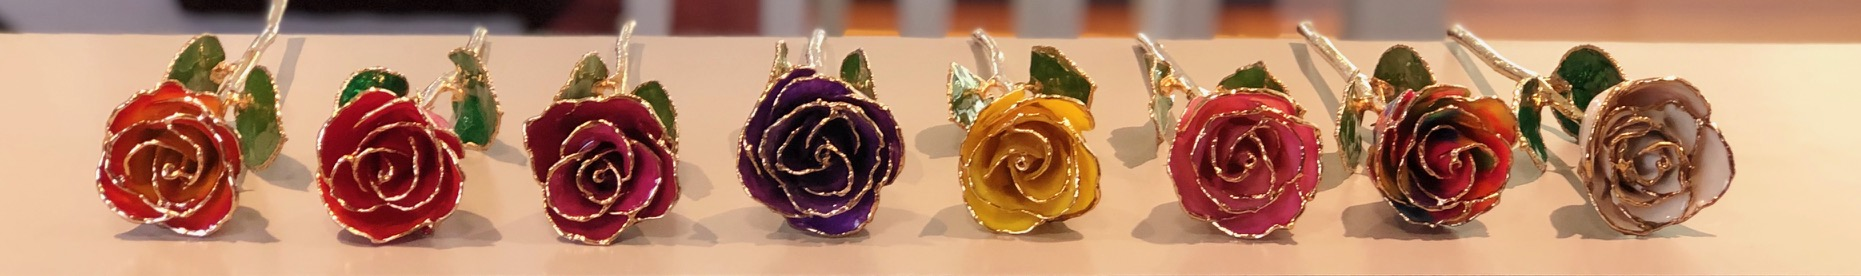 Gold Dipped Roses | Real 24k Gold Dipped Roses | Harold